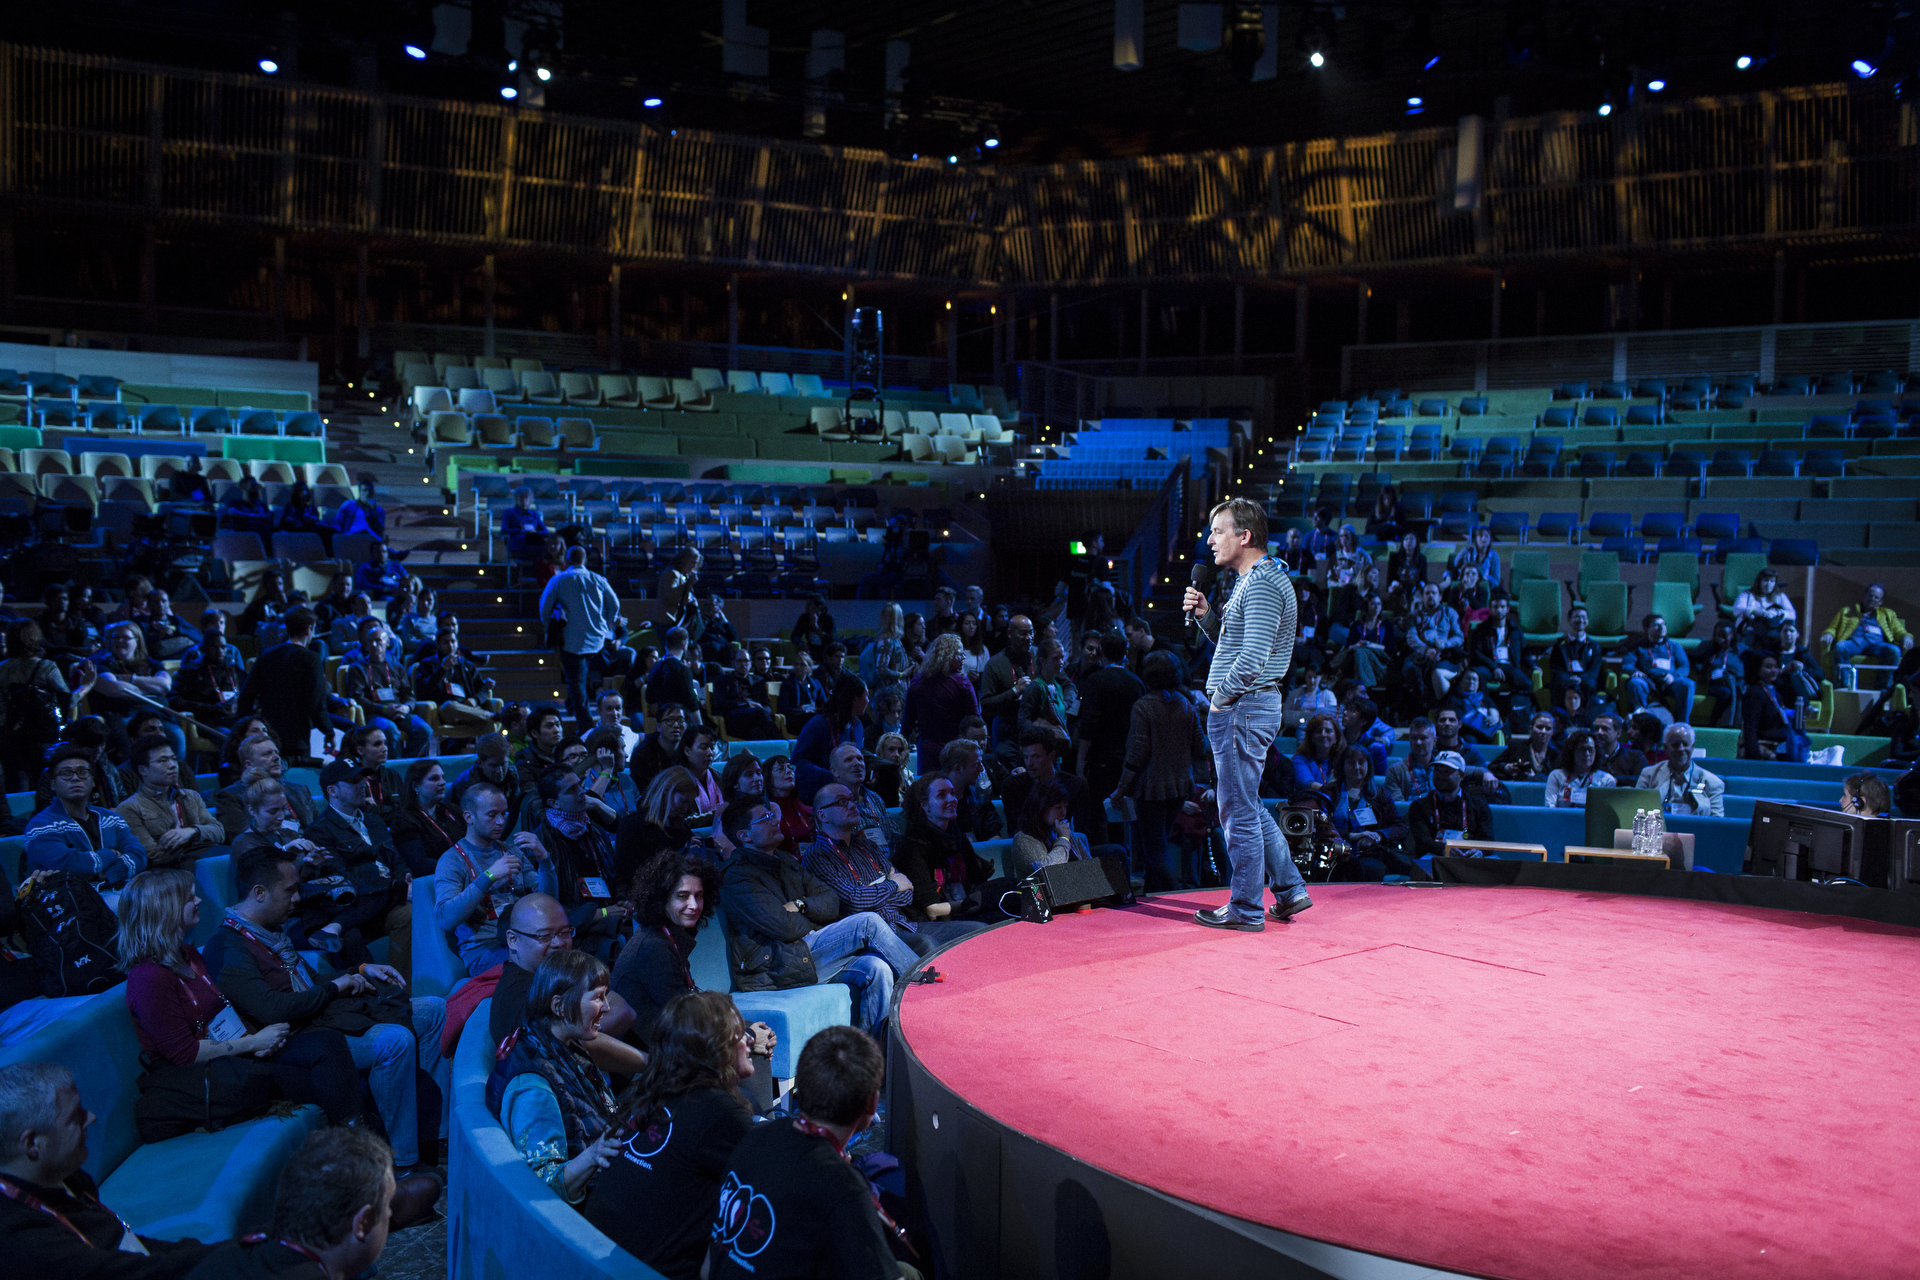 Chris Anderson addresses TEDx organizers from around the world in the TED2015 theater, making use of that 16 foot stage. Photo: James Duncan Davidson/TED